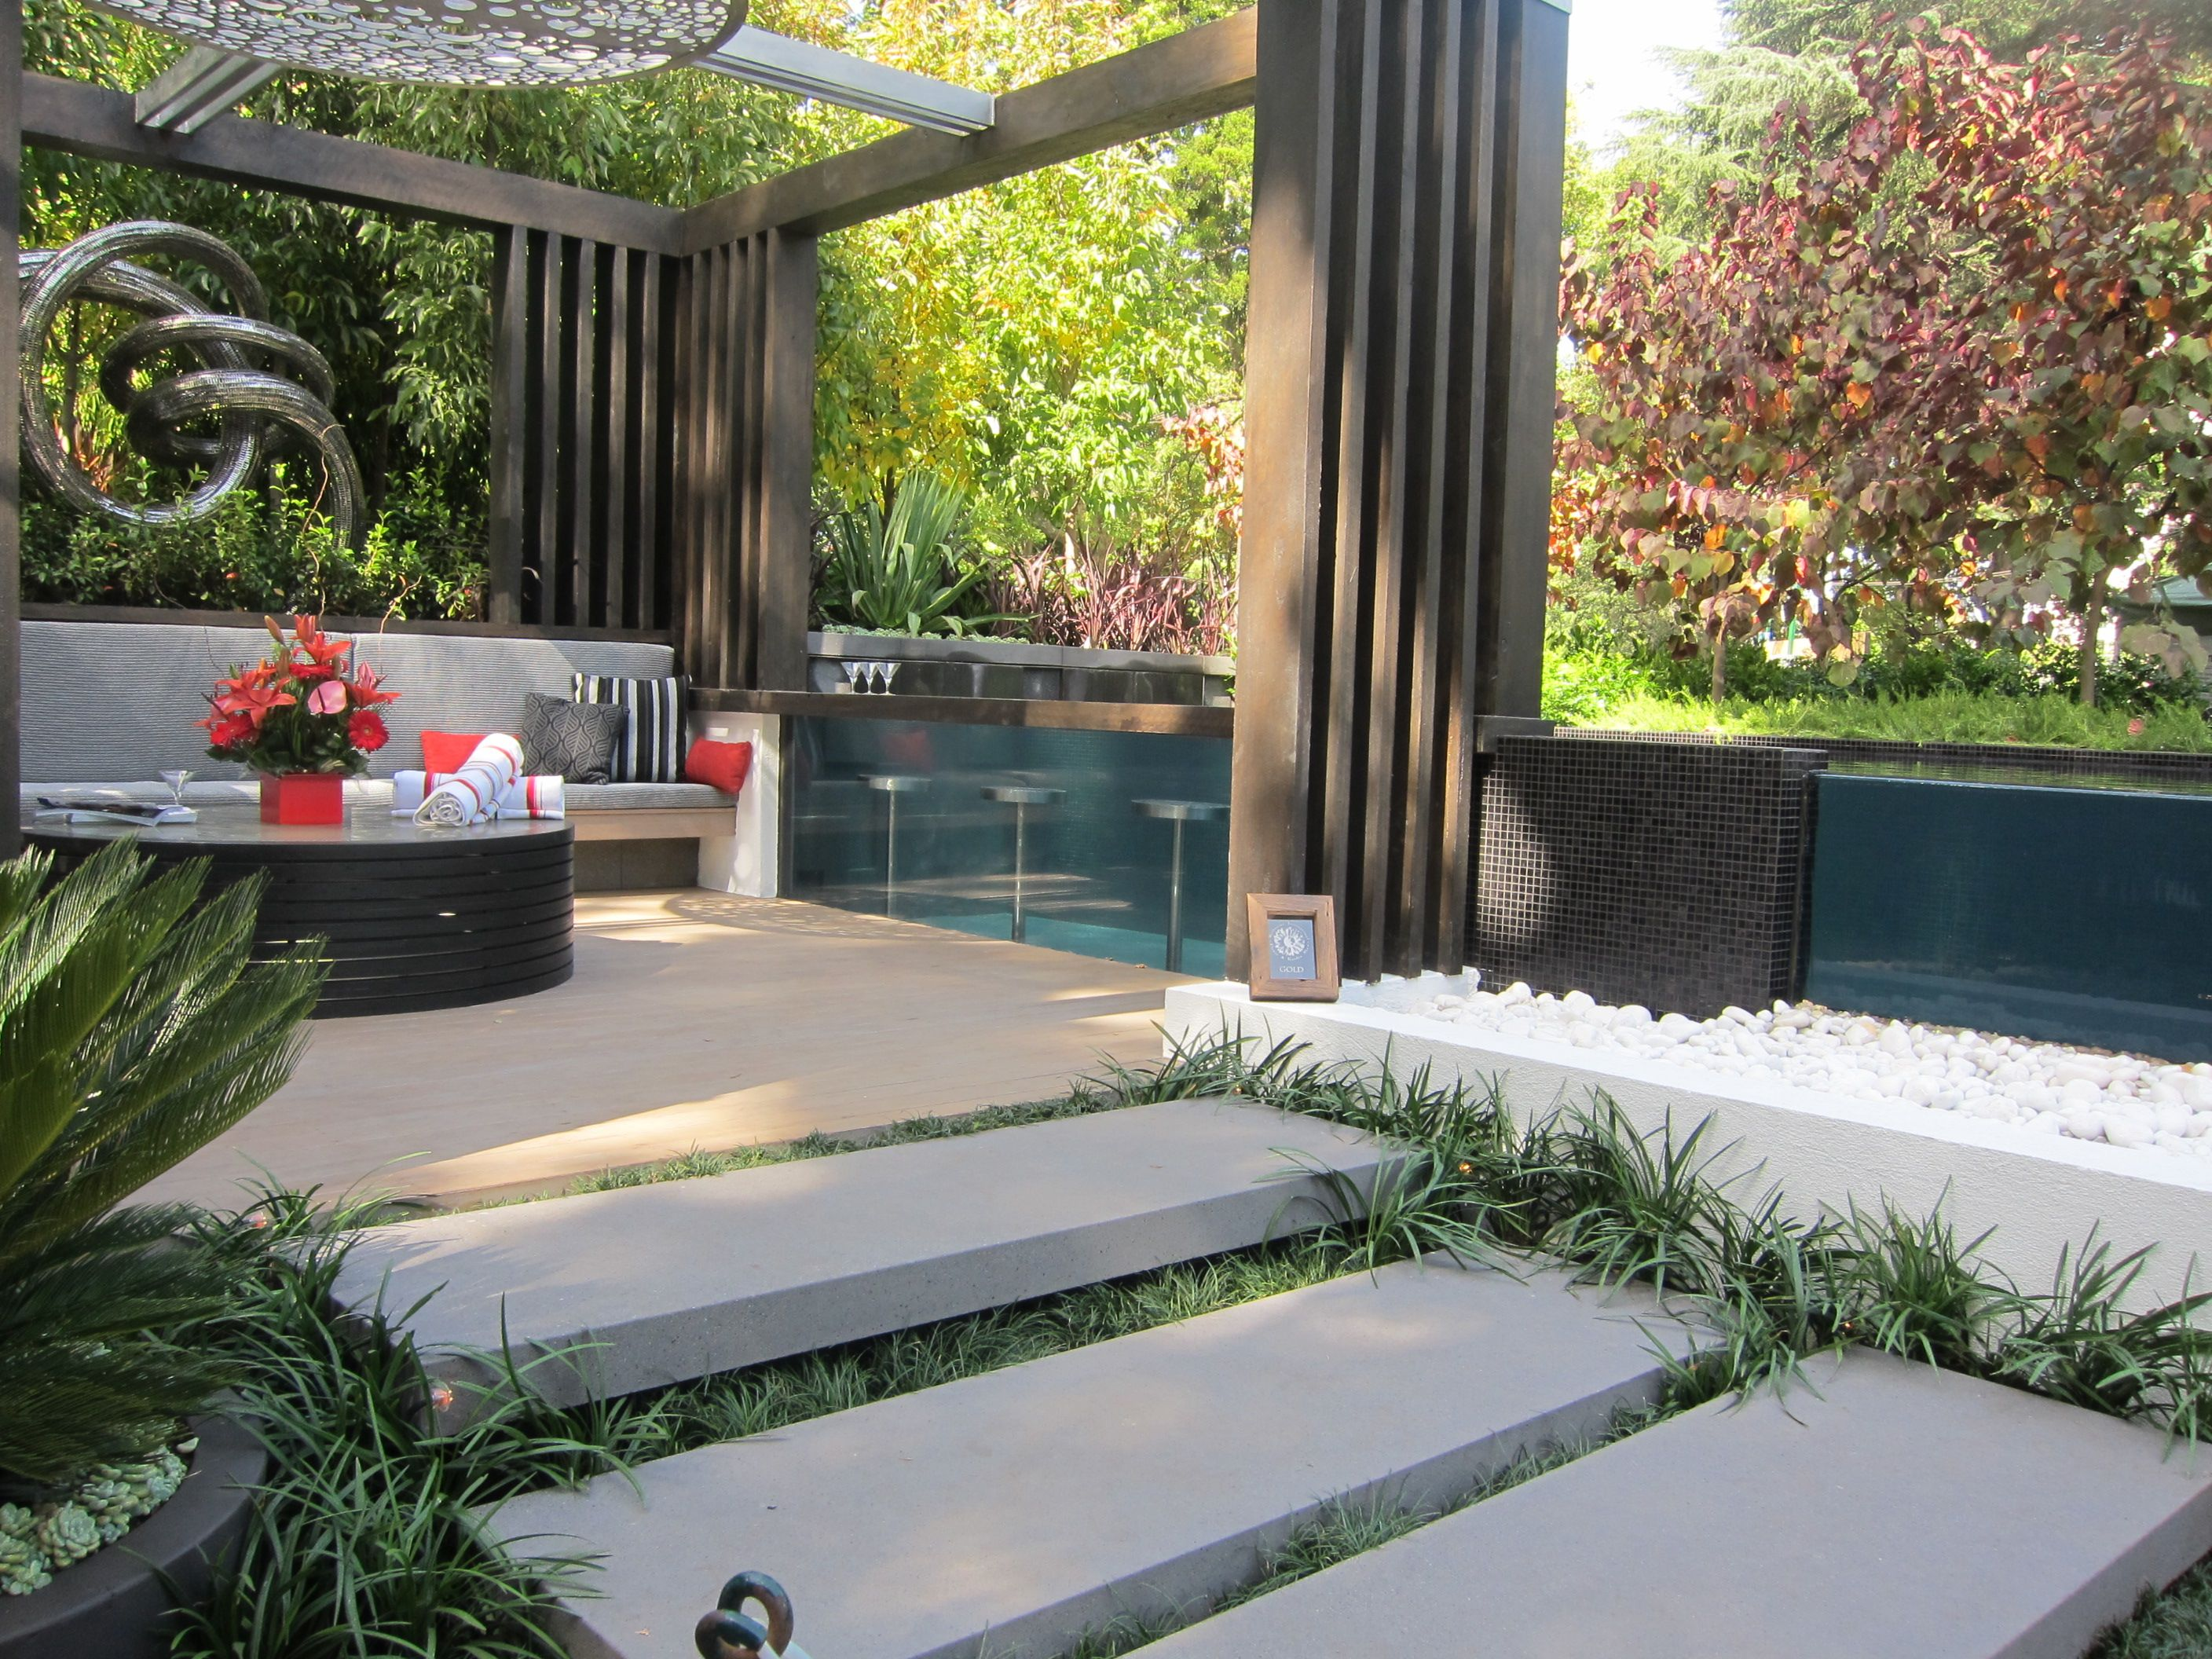 Jack merlo design more outdoor garden ideas landscape design gardening - Pools In Small Backyards Outdoor Kitchen Designs Landscaping Ideas For Landscape Design Australia Good Dining Sets